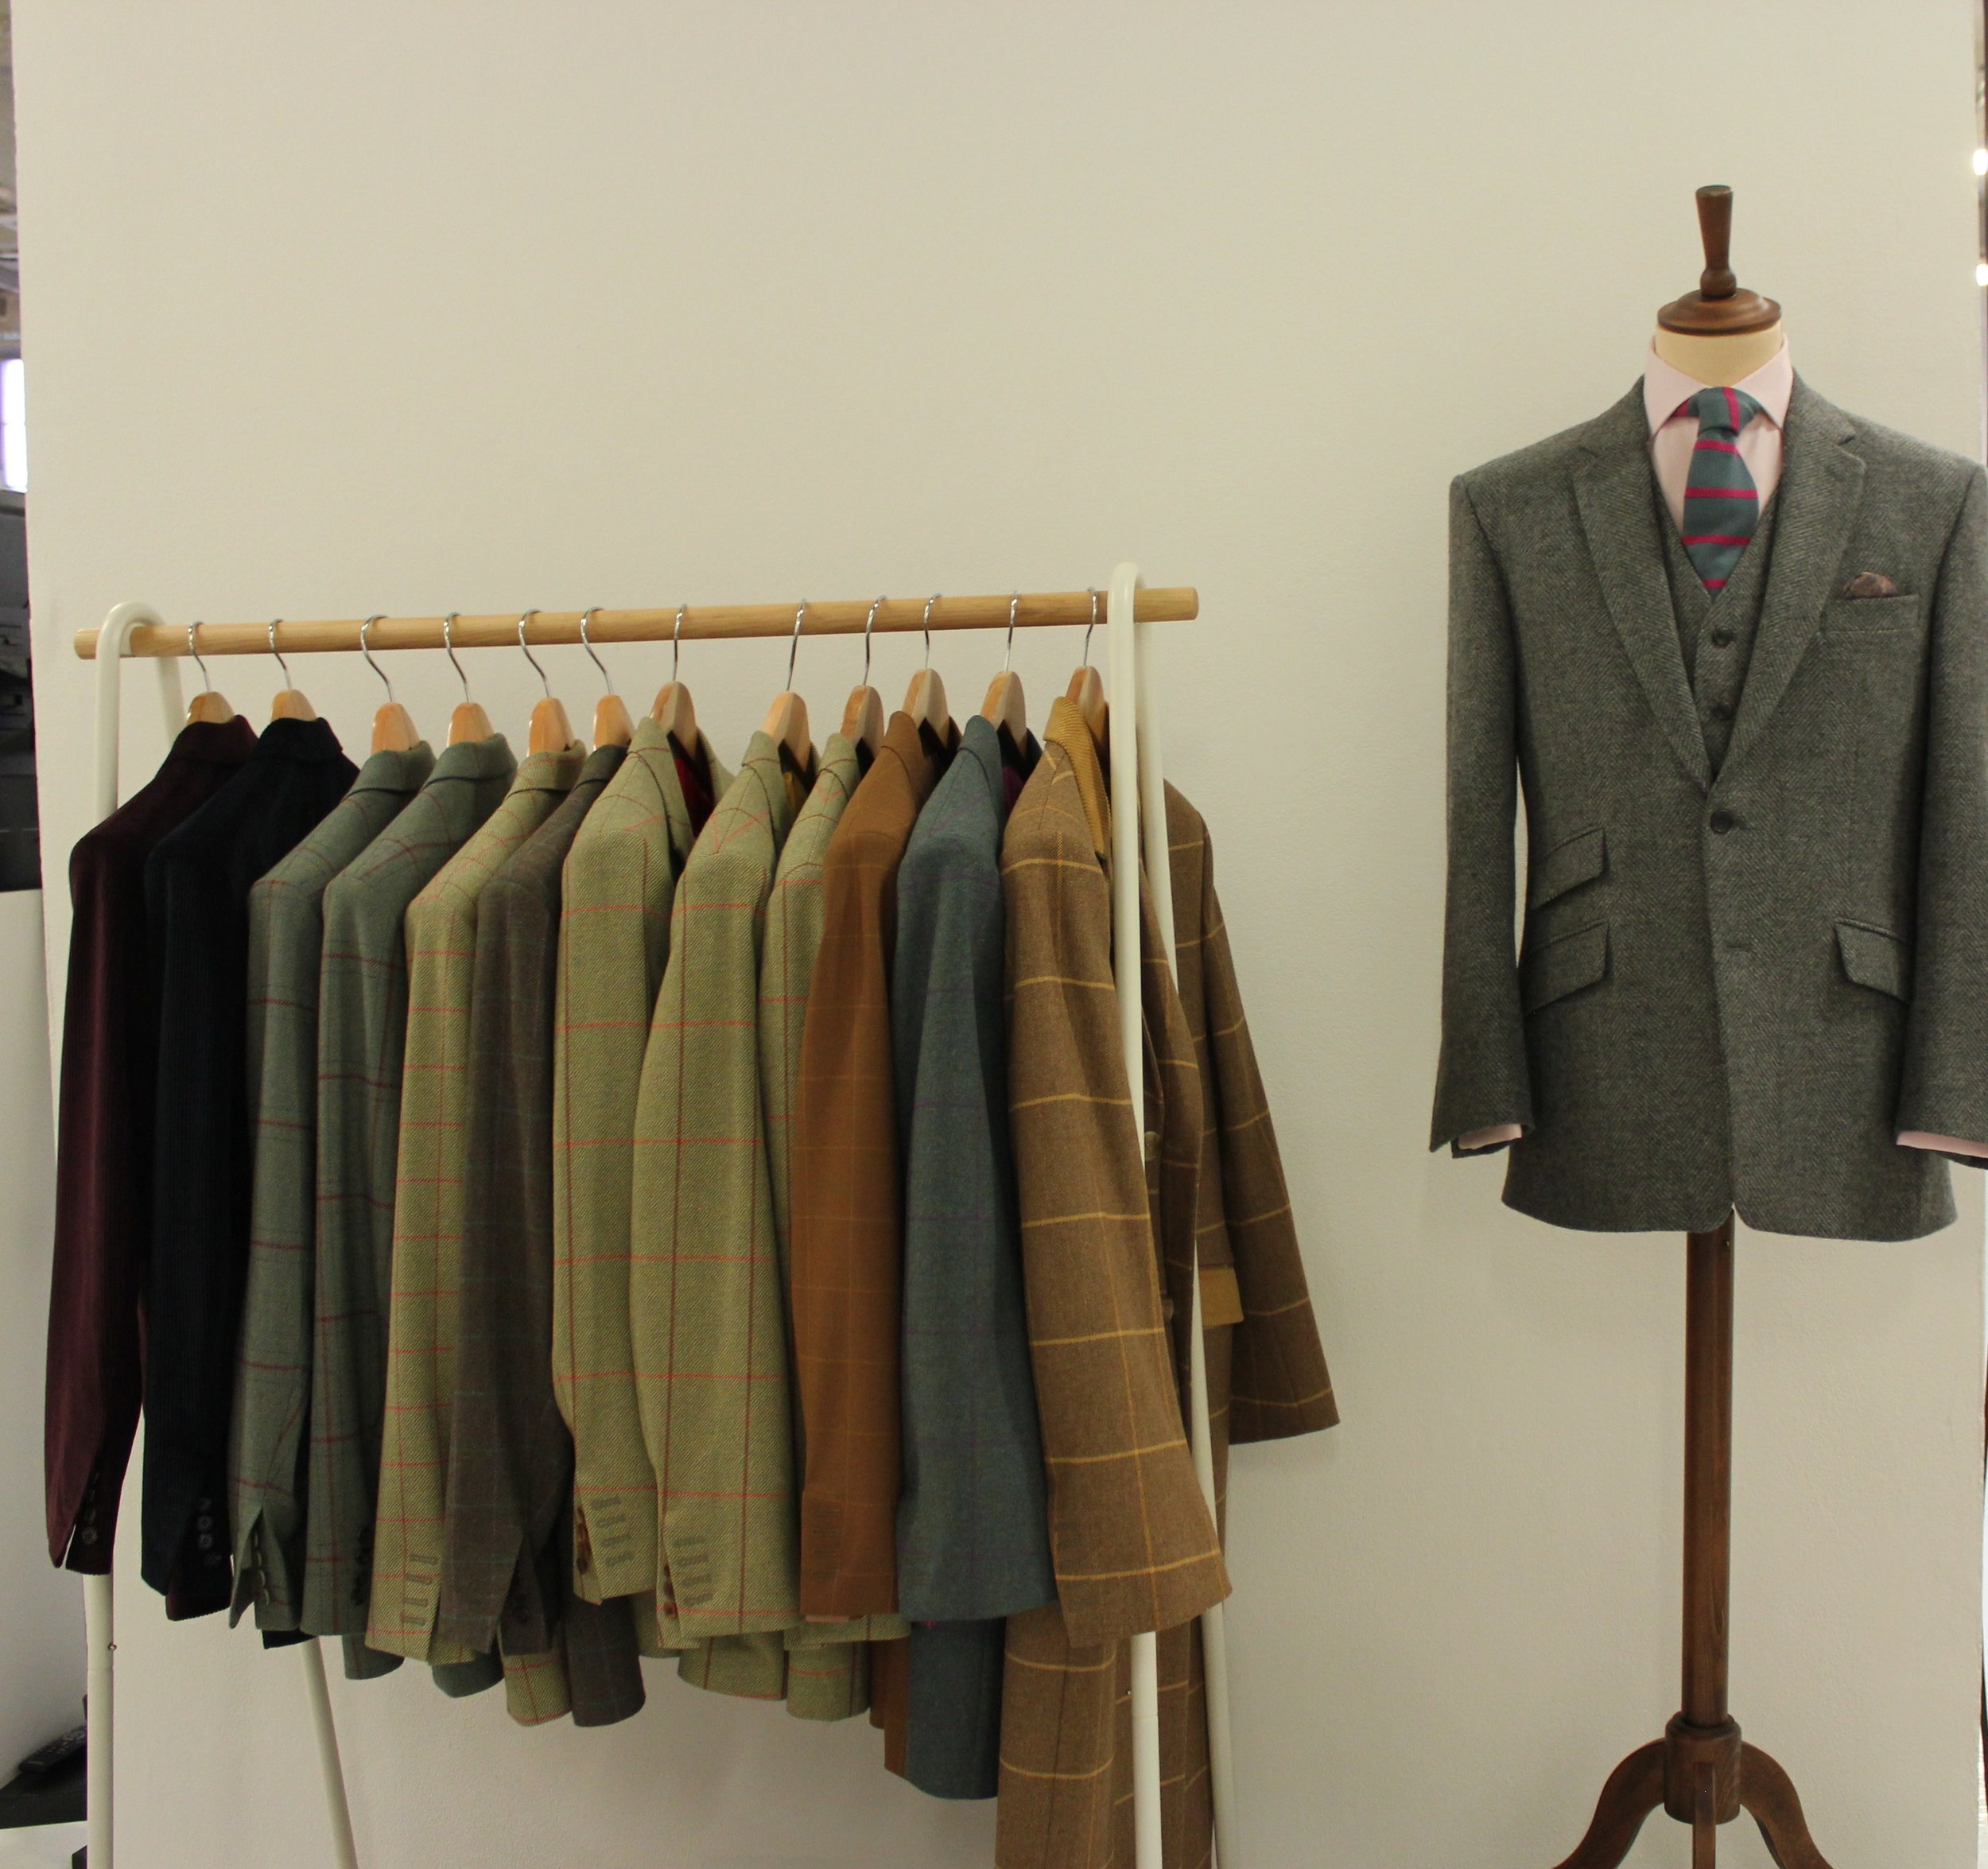 tweed-jacket-all-uk-made-british-bespoke-tailor-grey-grenn-brown-over-check-herringbone-style.JPG